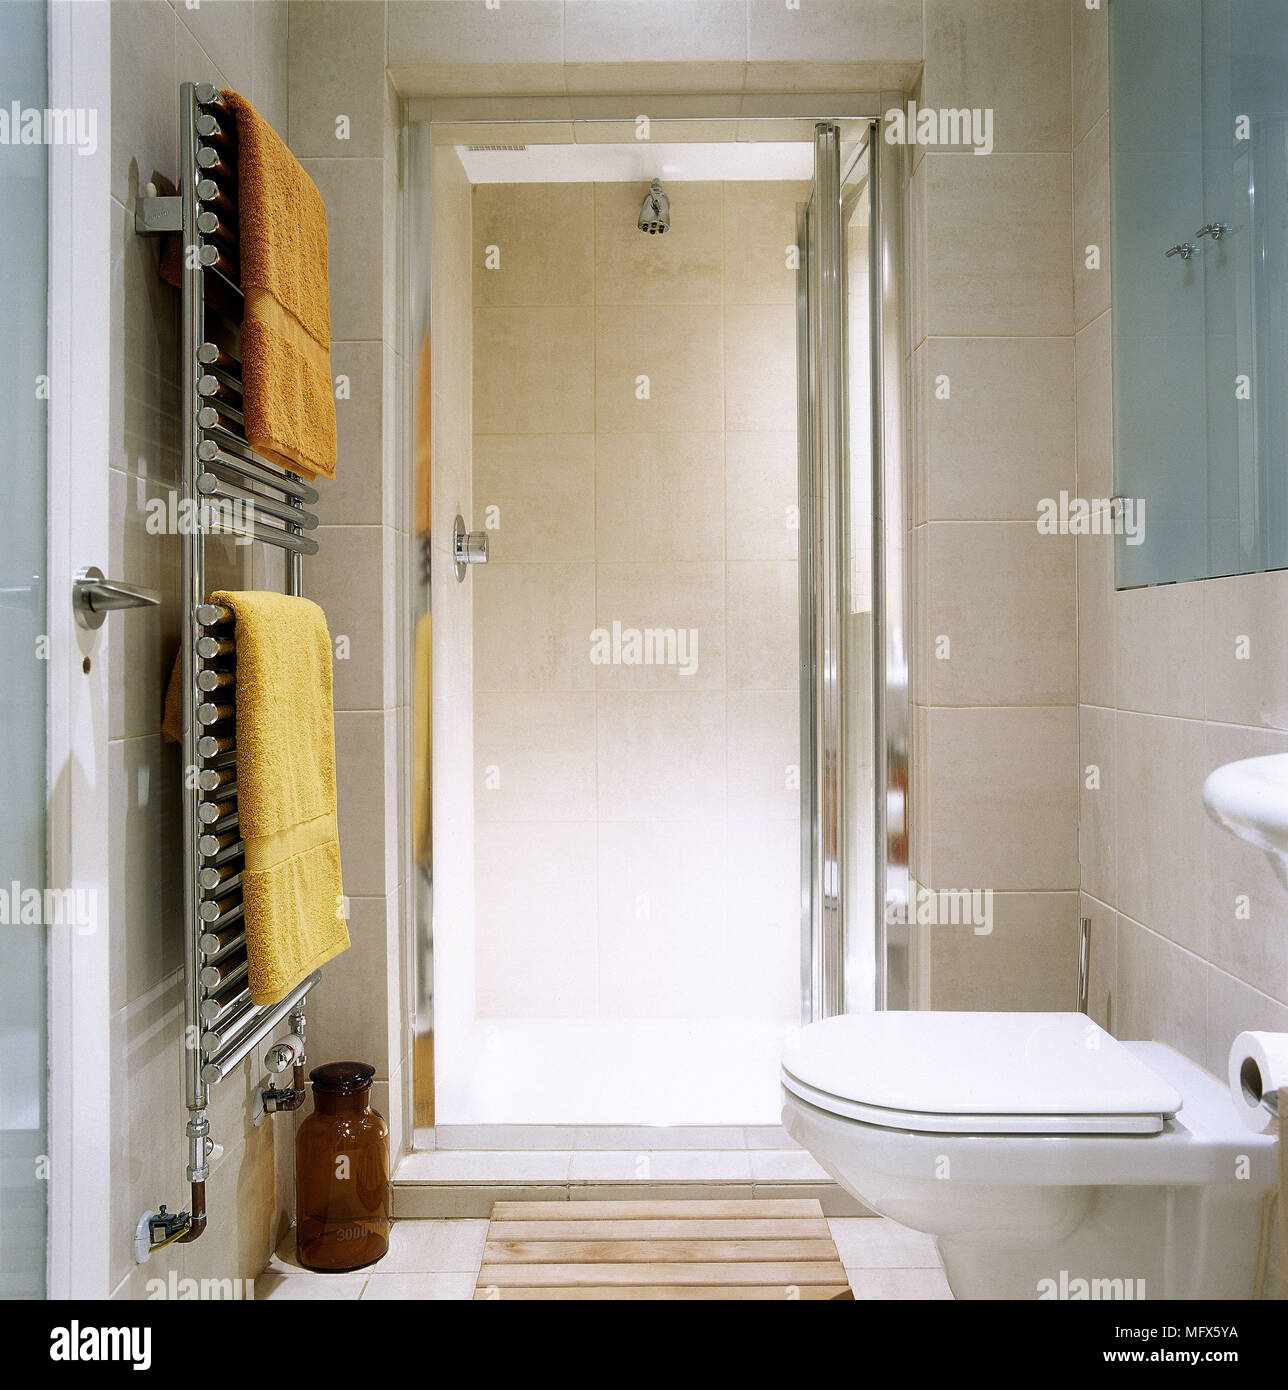 Modern, tiled bathroom with a shower cubicle, toilet, and towels ...